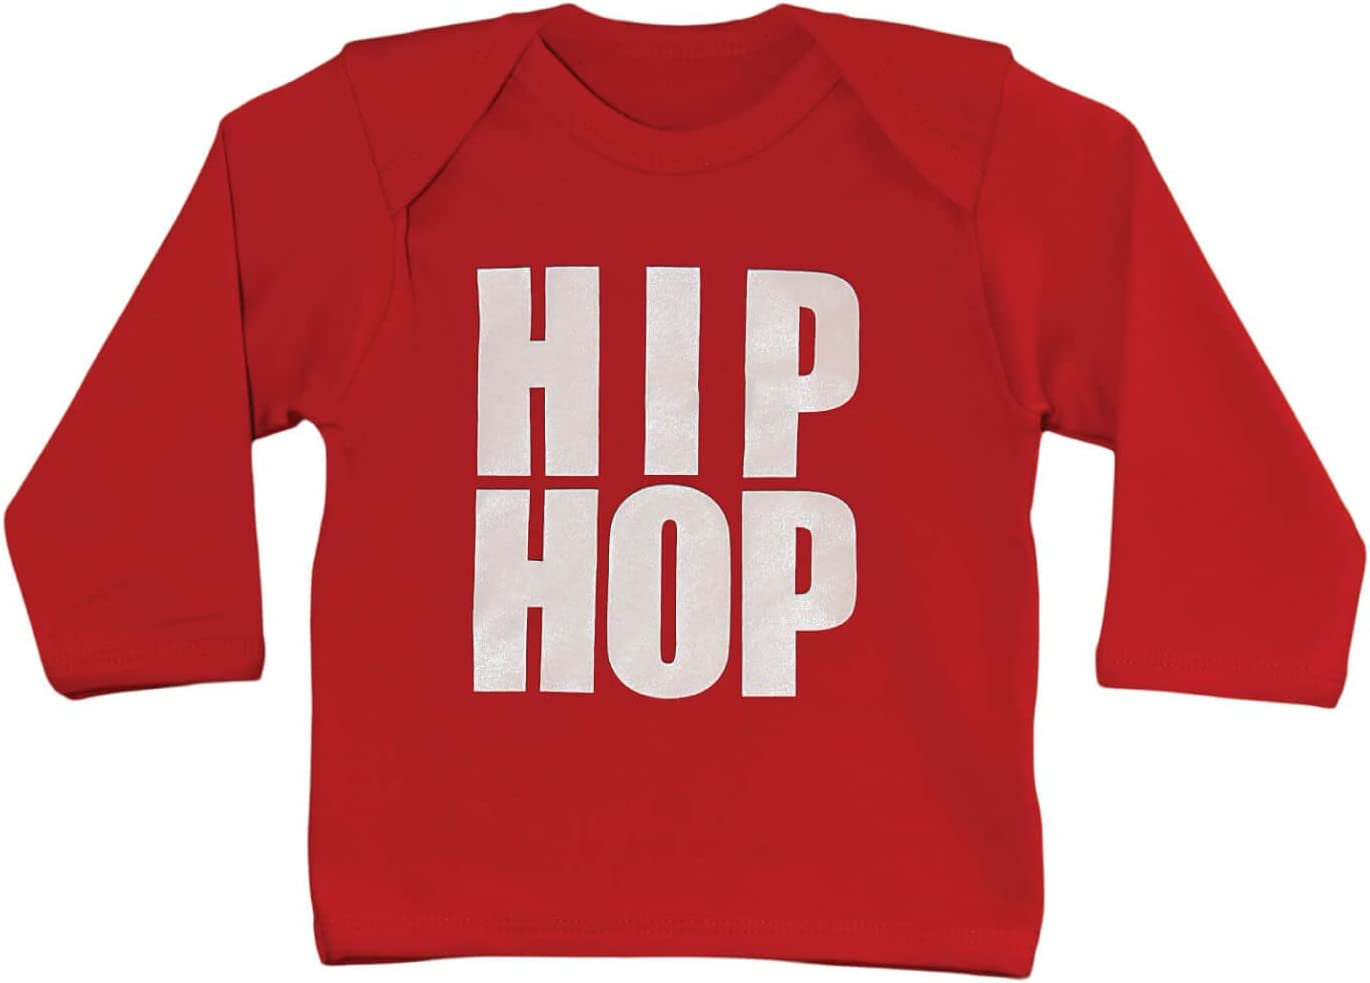 Hip Hop Cool Rosso Bambino T Shirt ideale per magliette rosso Red 0-6 mesi